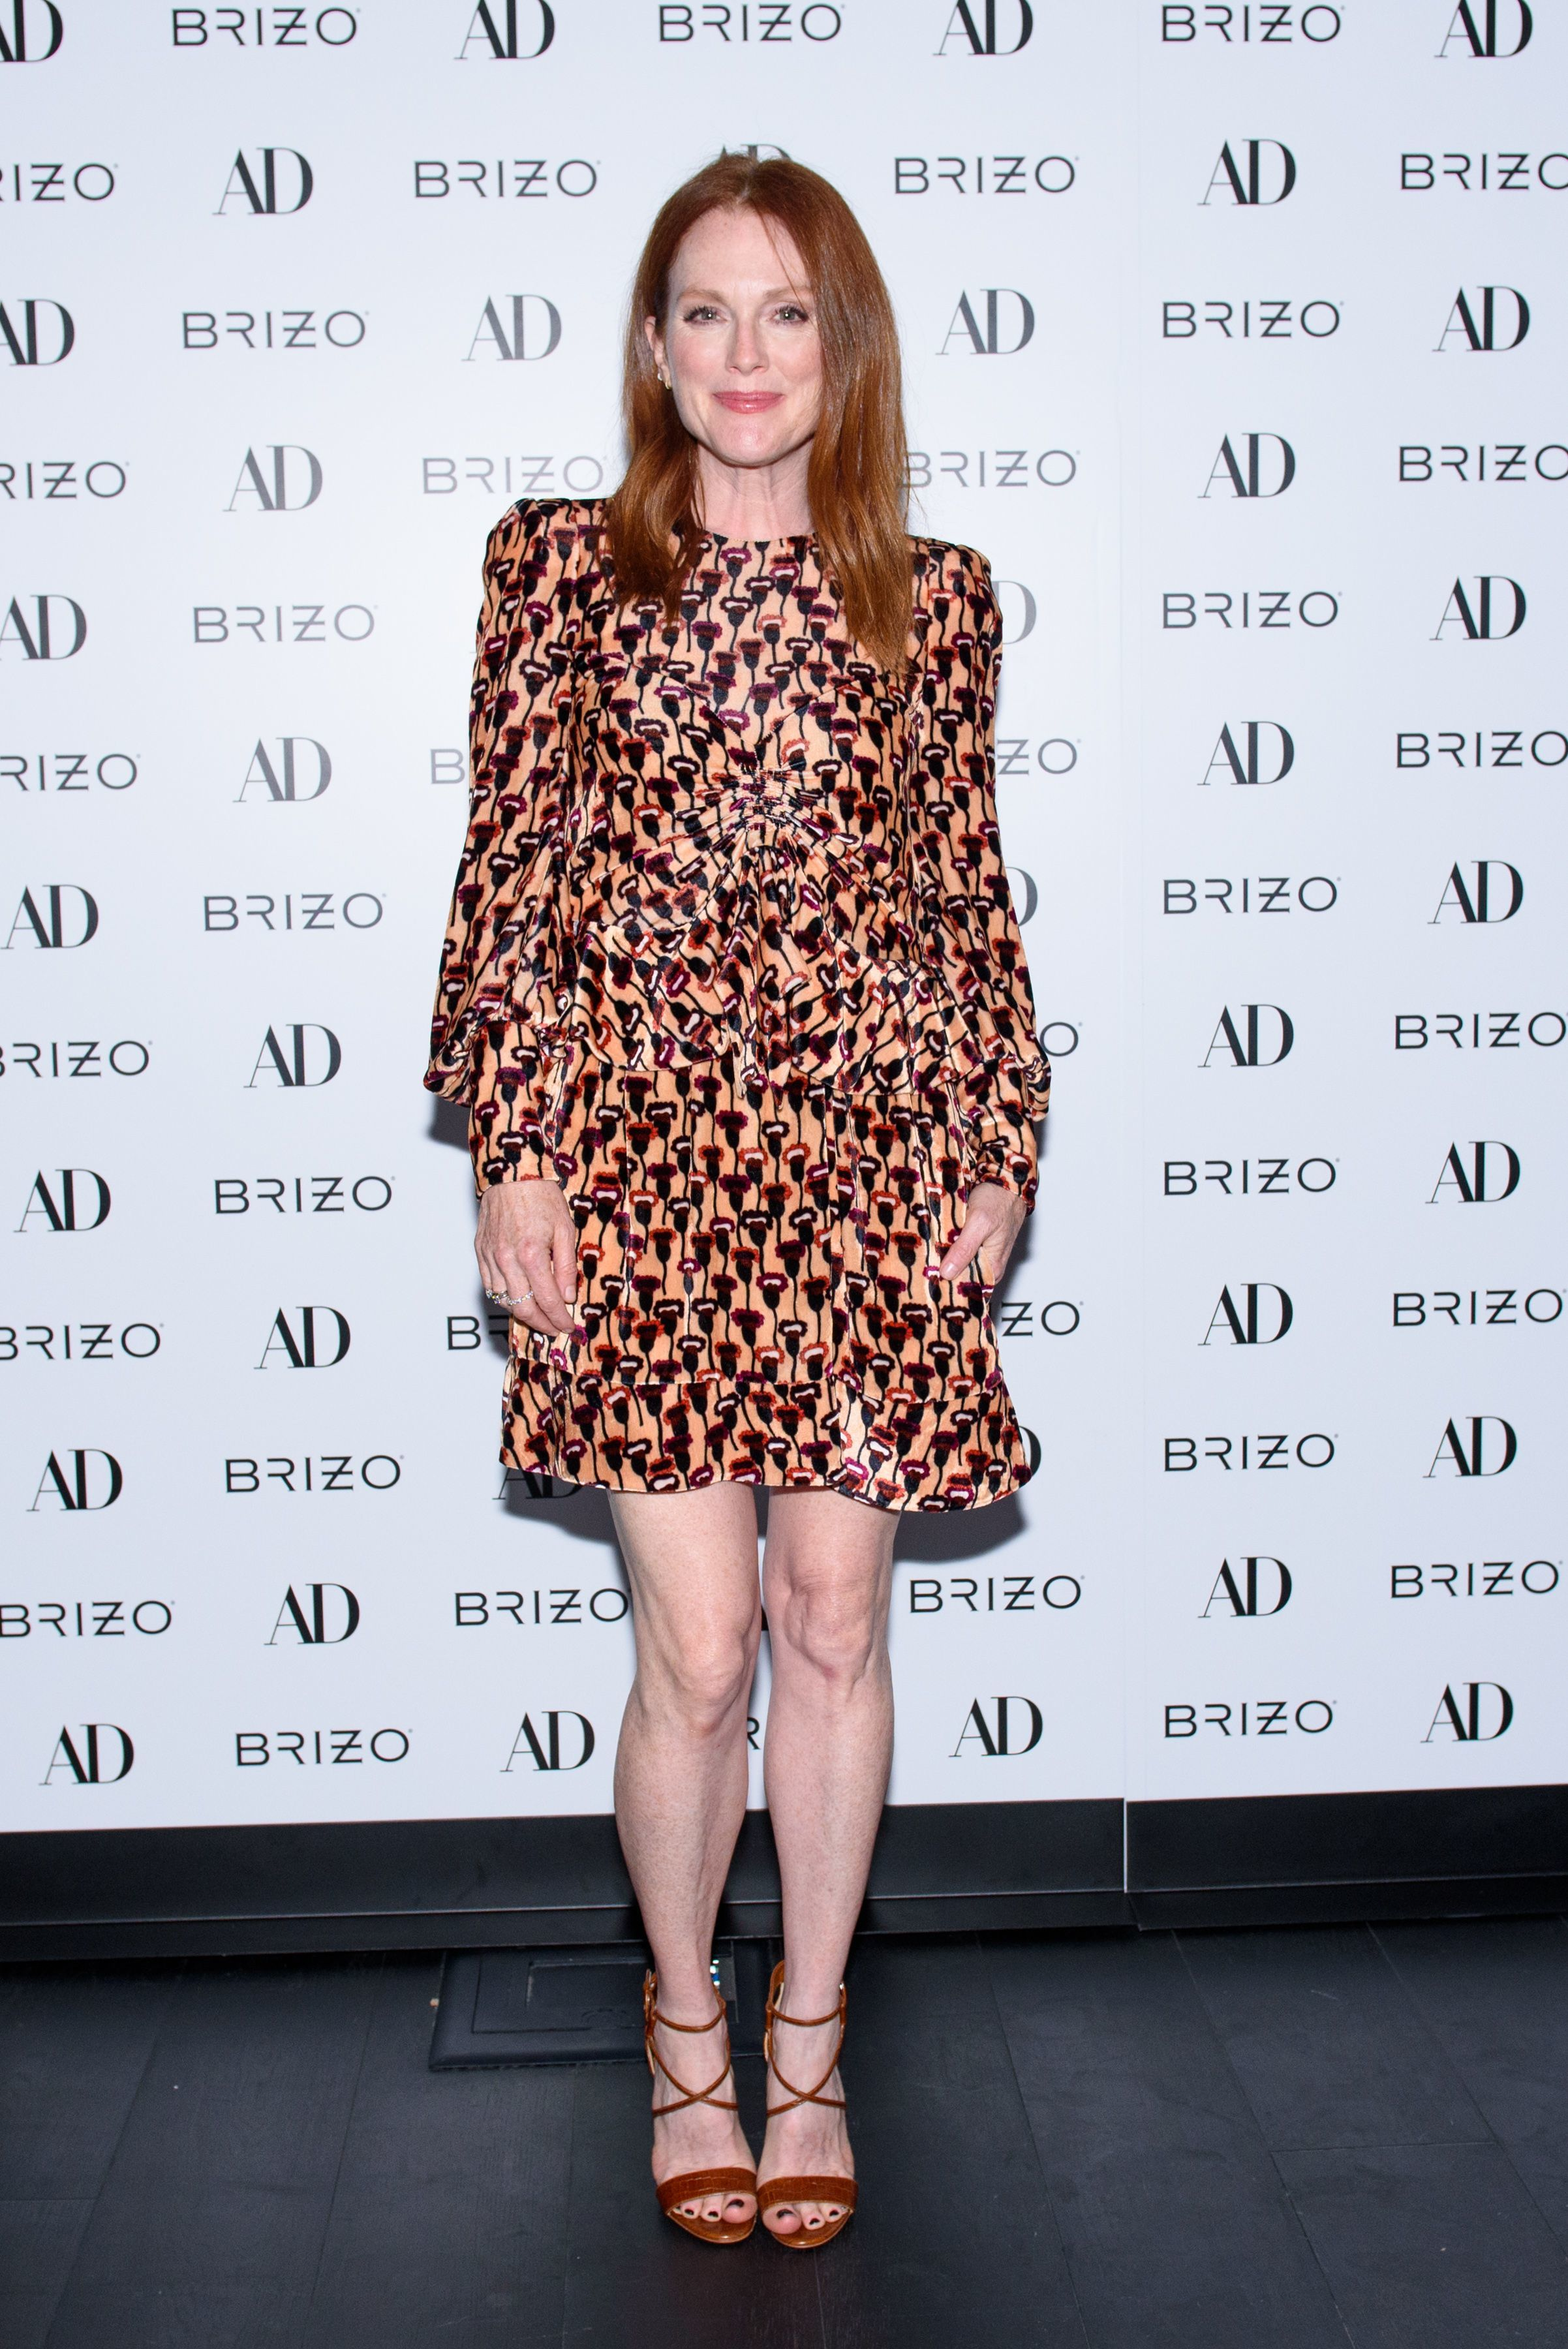 Julianne Moore attends the Architectural Digest September Style issue party in New York City on Aug. 2, 2017.